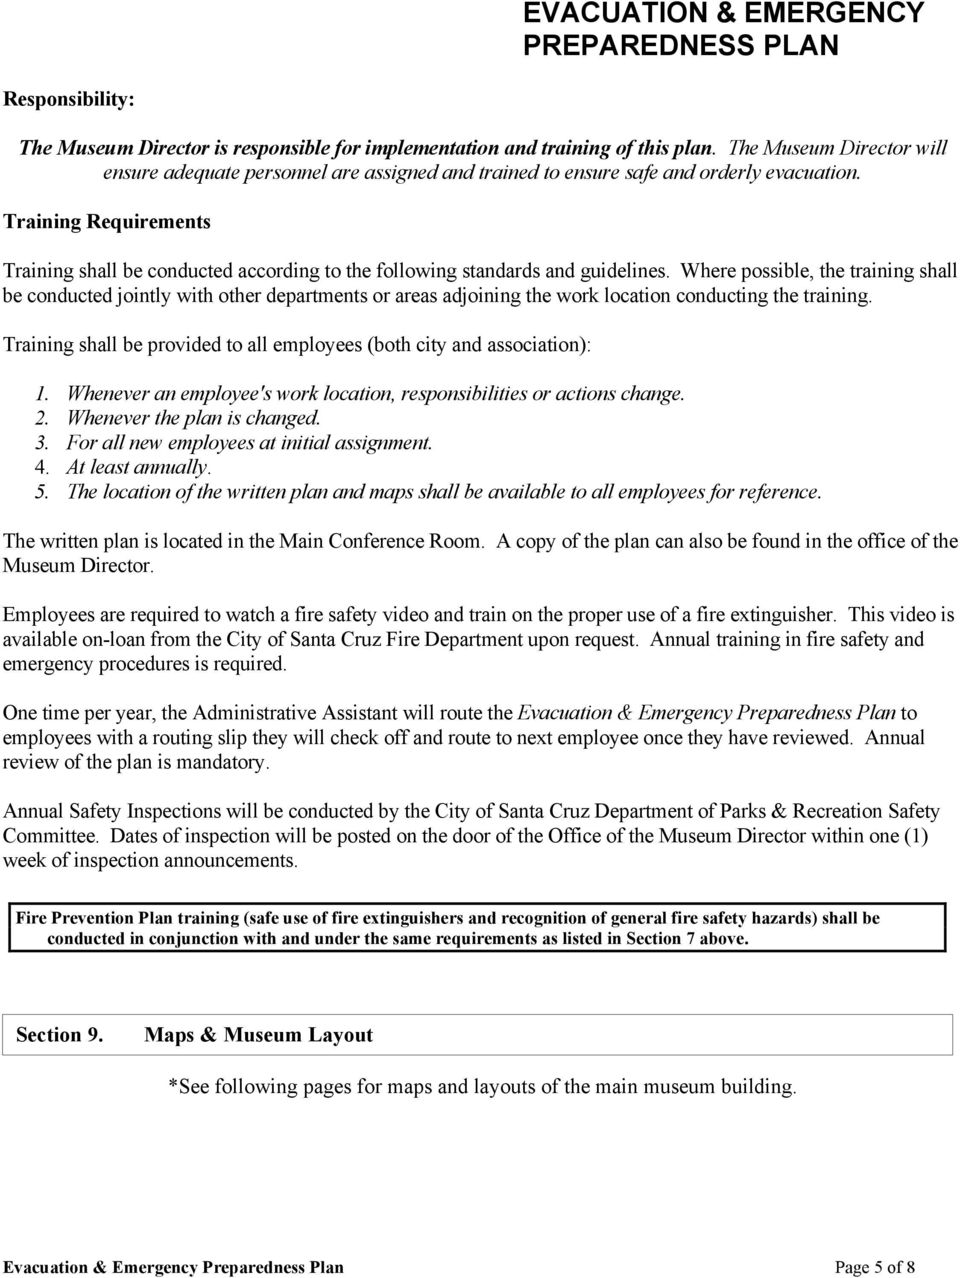 Training Requirements Training shall be conducted according to the following standards and guidelines.